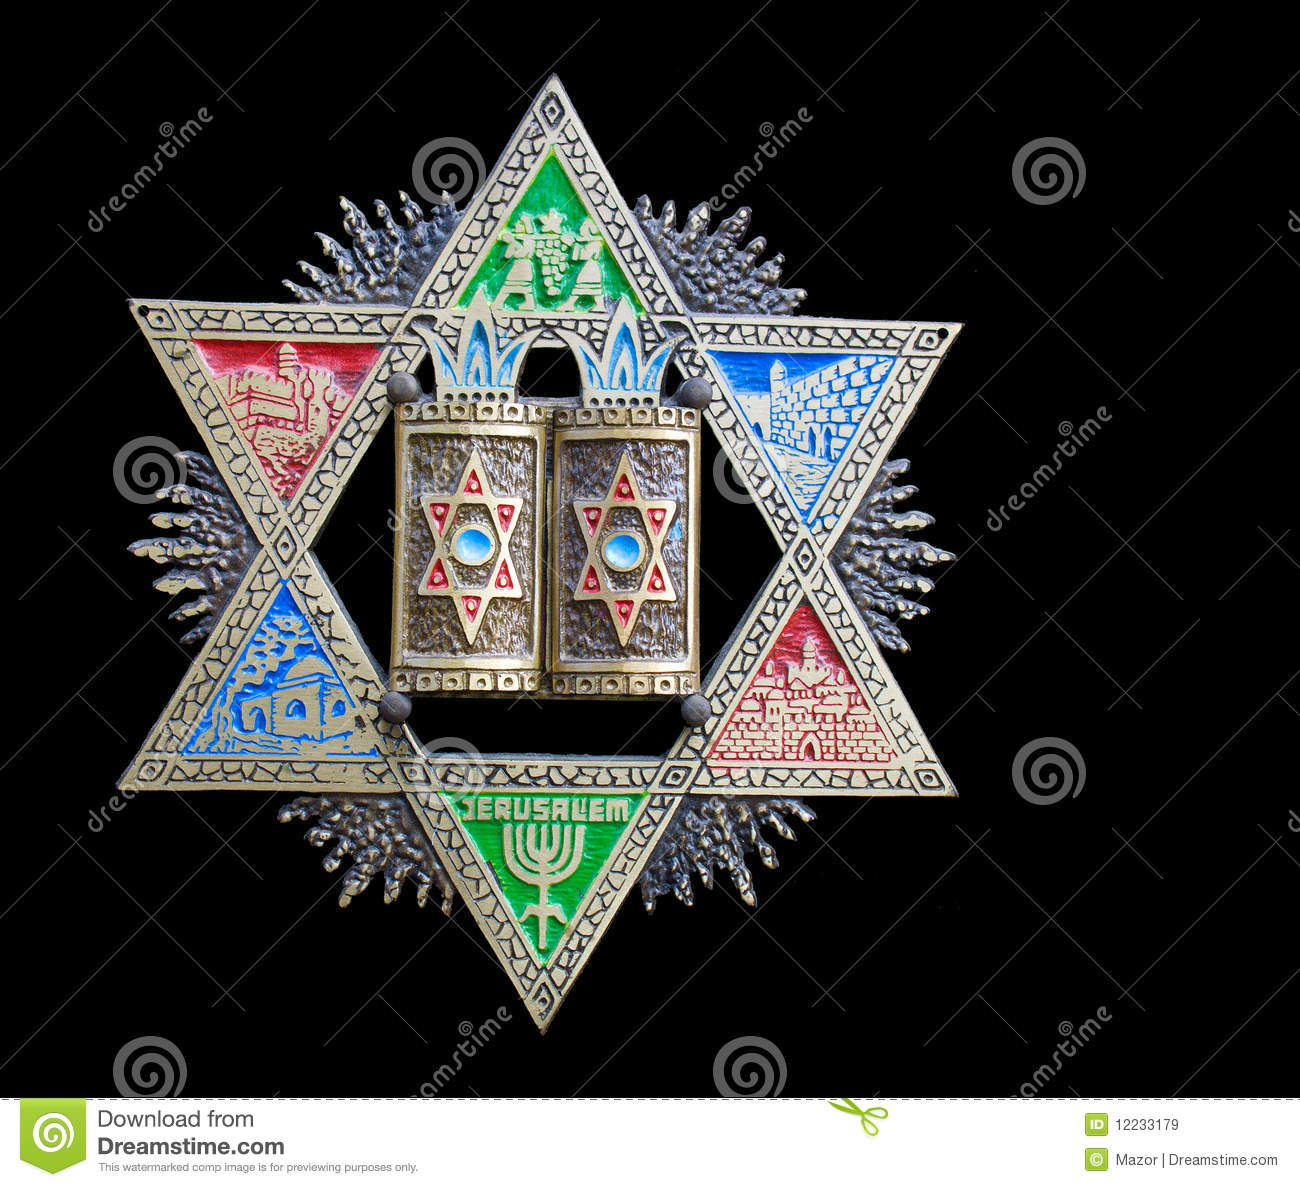 Vintage colorful magen david star of david stock image image vintage colorful magen david star of david biocorpaavc Choice Image